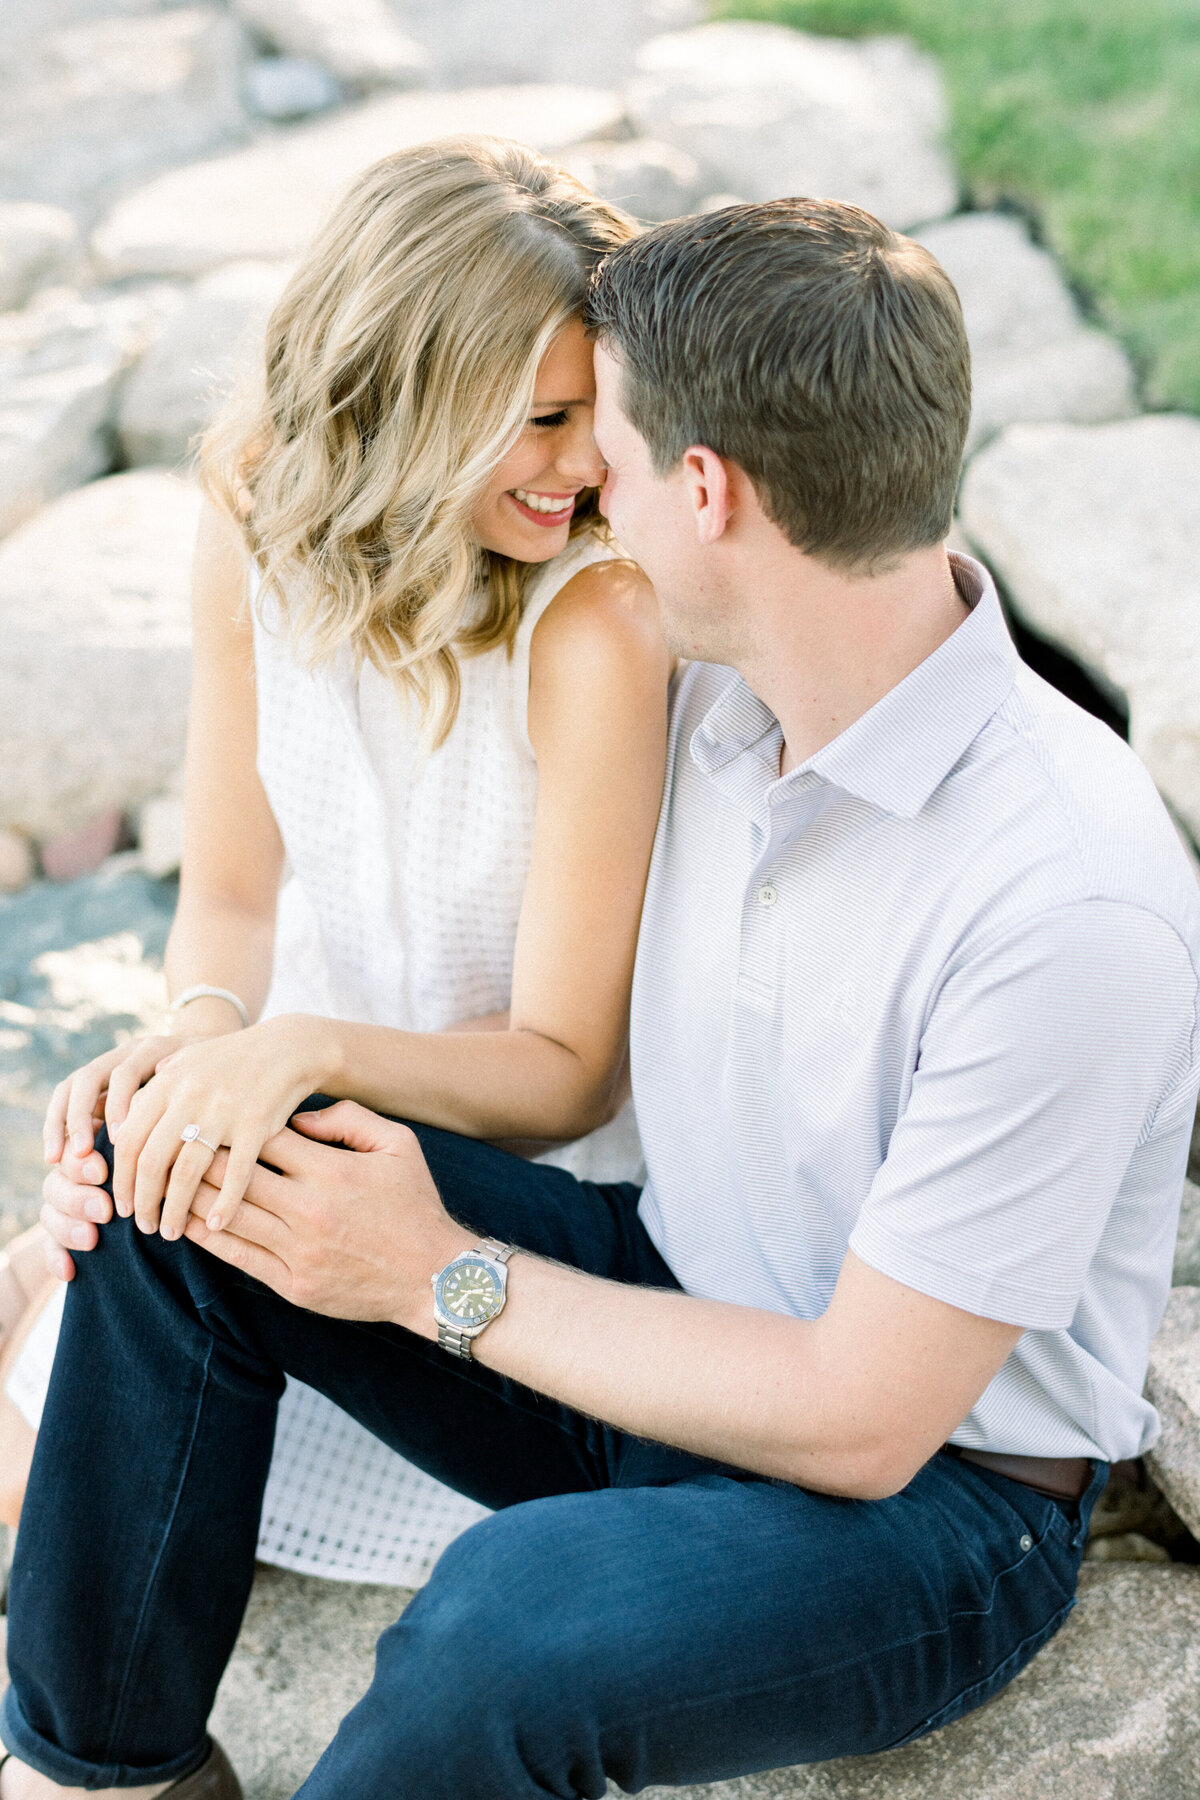 Minnesota engagement photos, Minnesota wedding photographer, Minneapolis engagement photos, Minneapolis wedding photographer, Lake Minnetonka Engagment Photos, Wayzata Engagement Photos